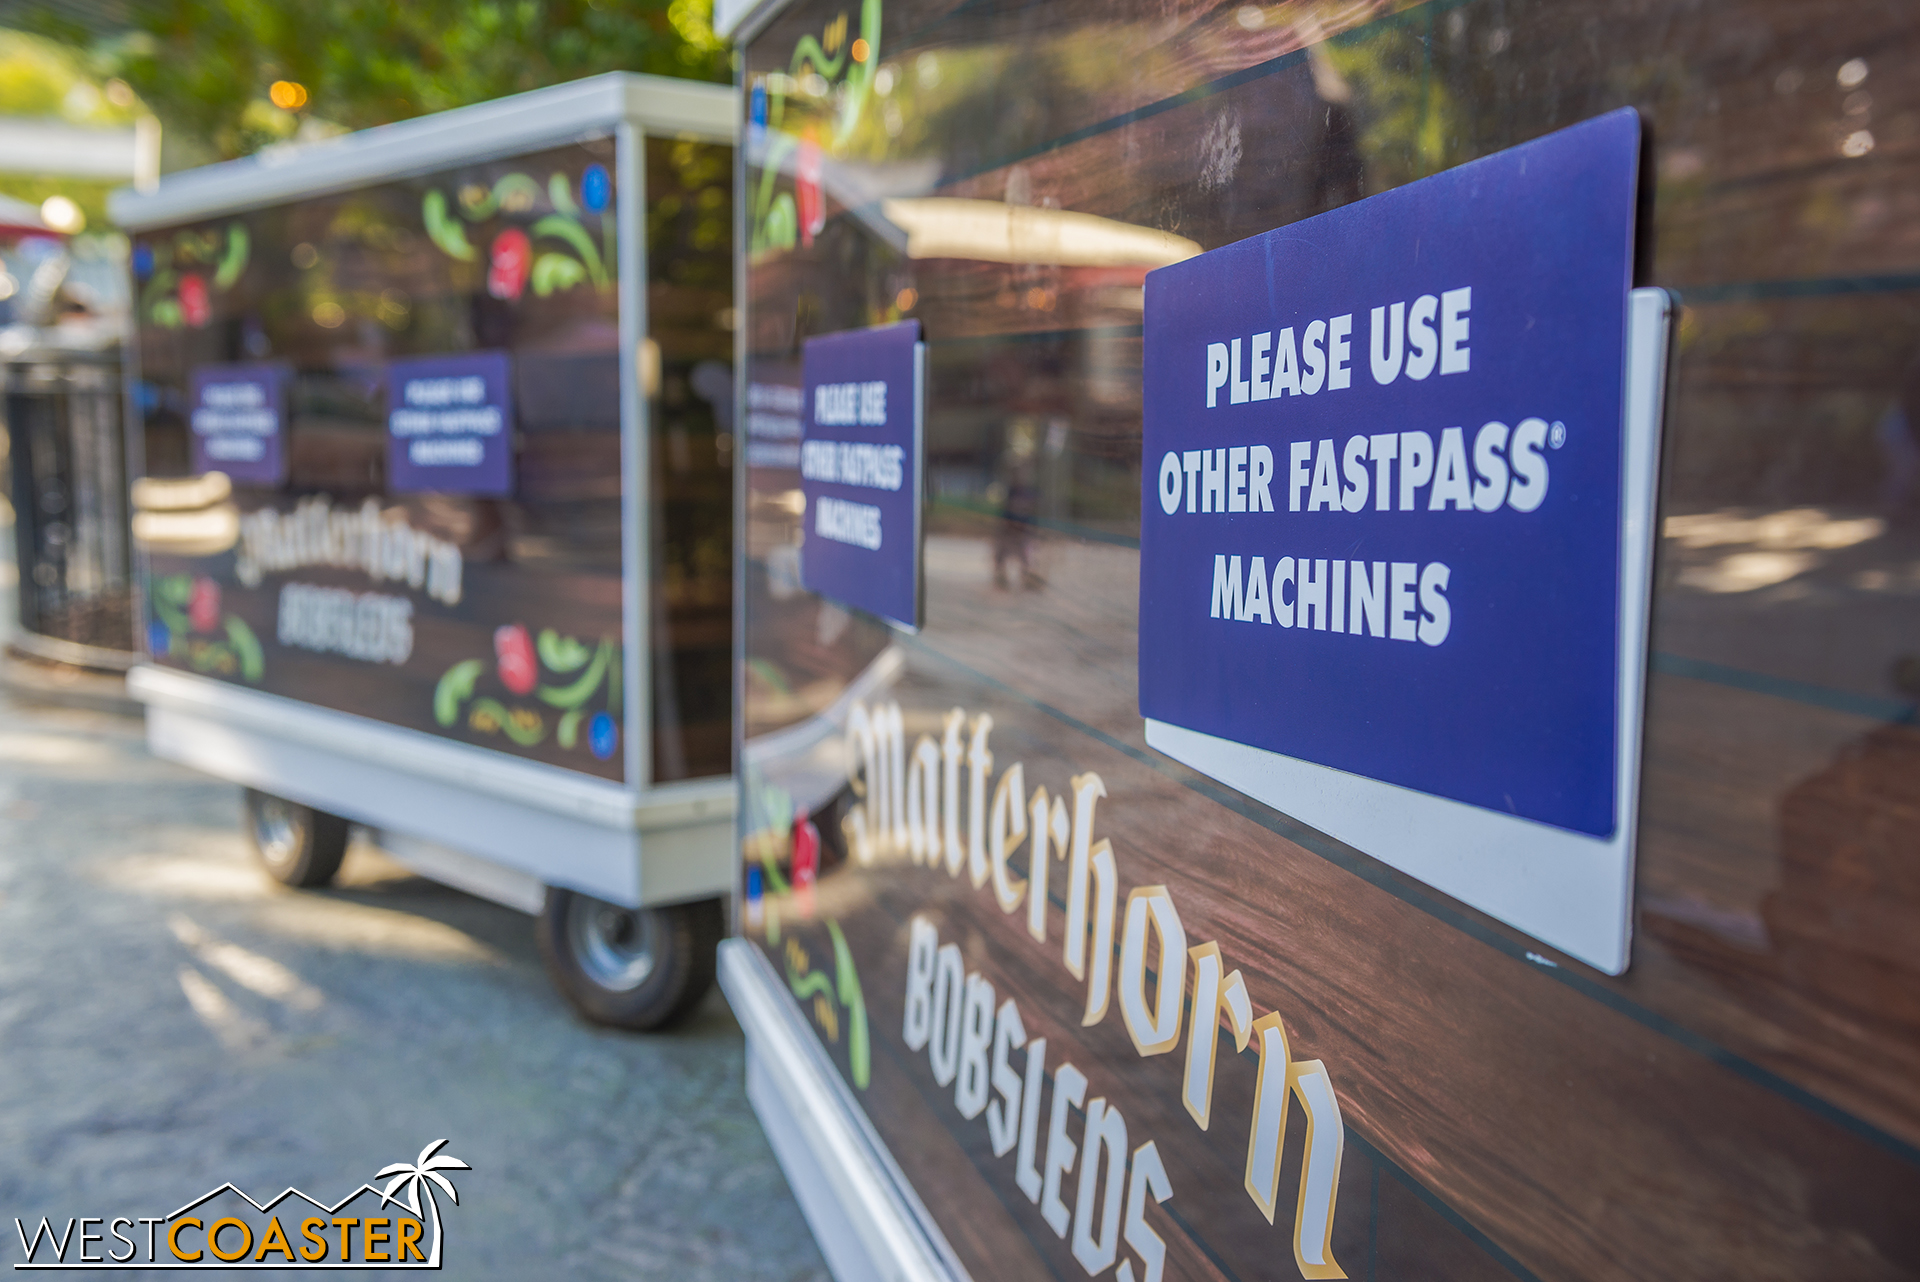 What? Other Fastpass machines??